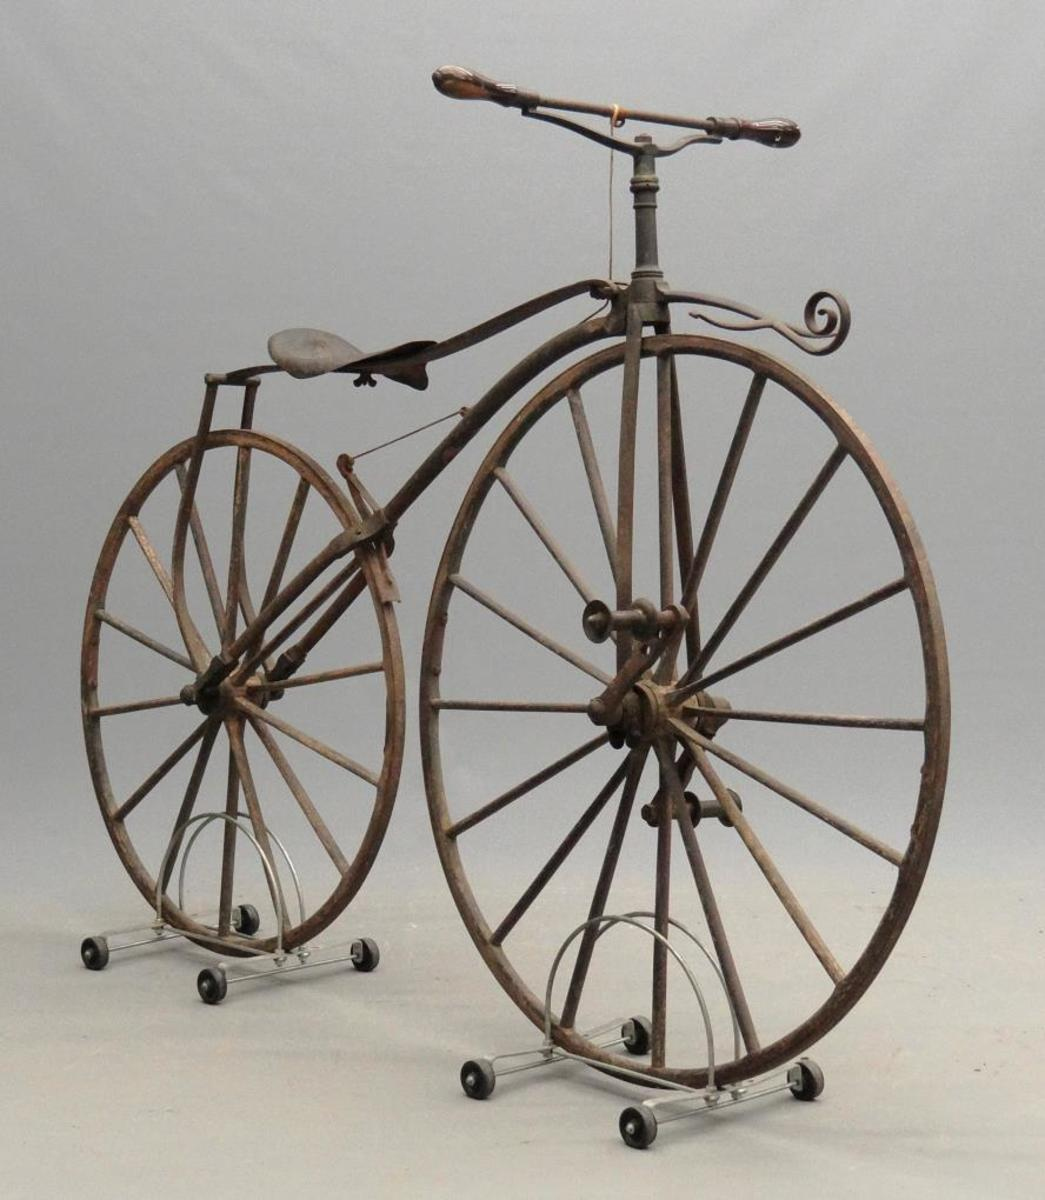 "A rare circa 1869 Calvin Witty N.Y.C. boneshaker, which retains the name plate (Calvin Witty/Maker/Pat. Nov. 20, 1866/638 Broadway NY"") and matching pedals, brake, rosewood grips and original wheels; $14,040."